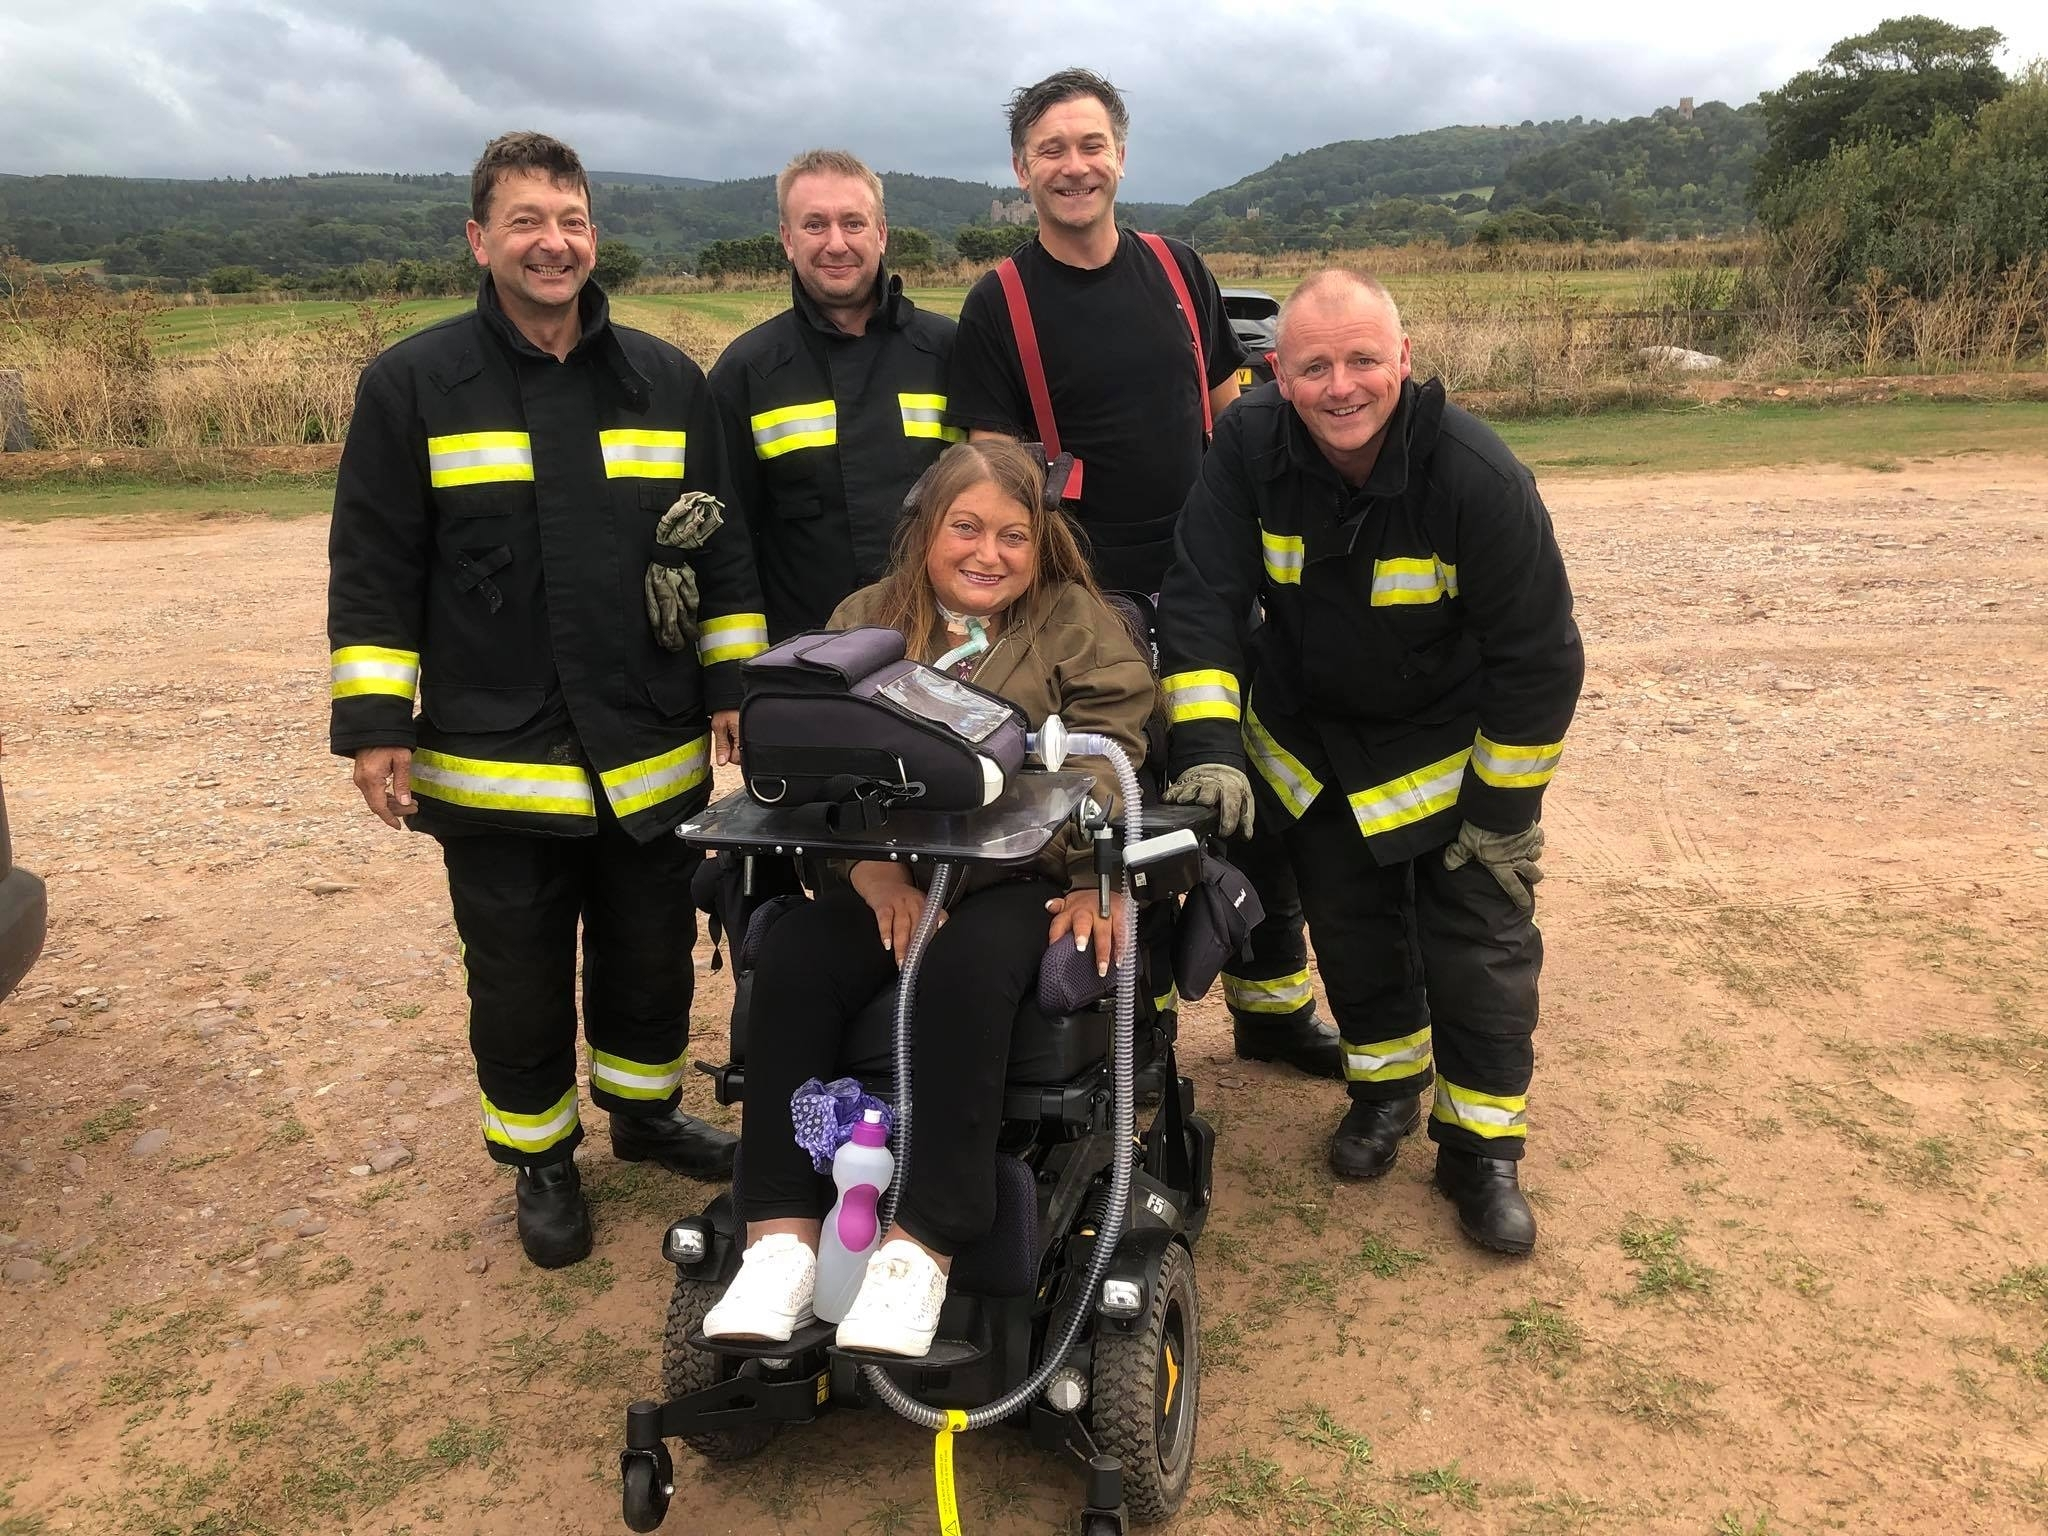 THANKFUL: Hannah Rose, 34, with firefighters from Minehead Fire Station. PIcture - Hannah Rose